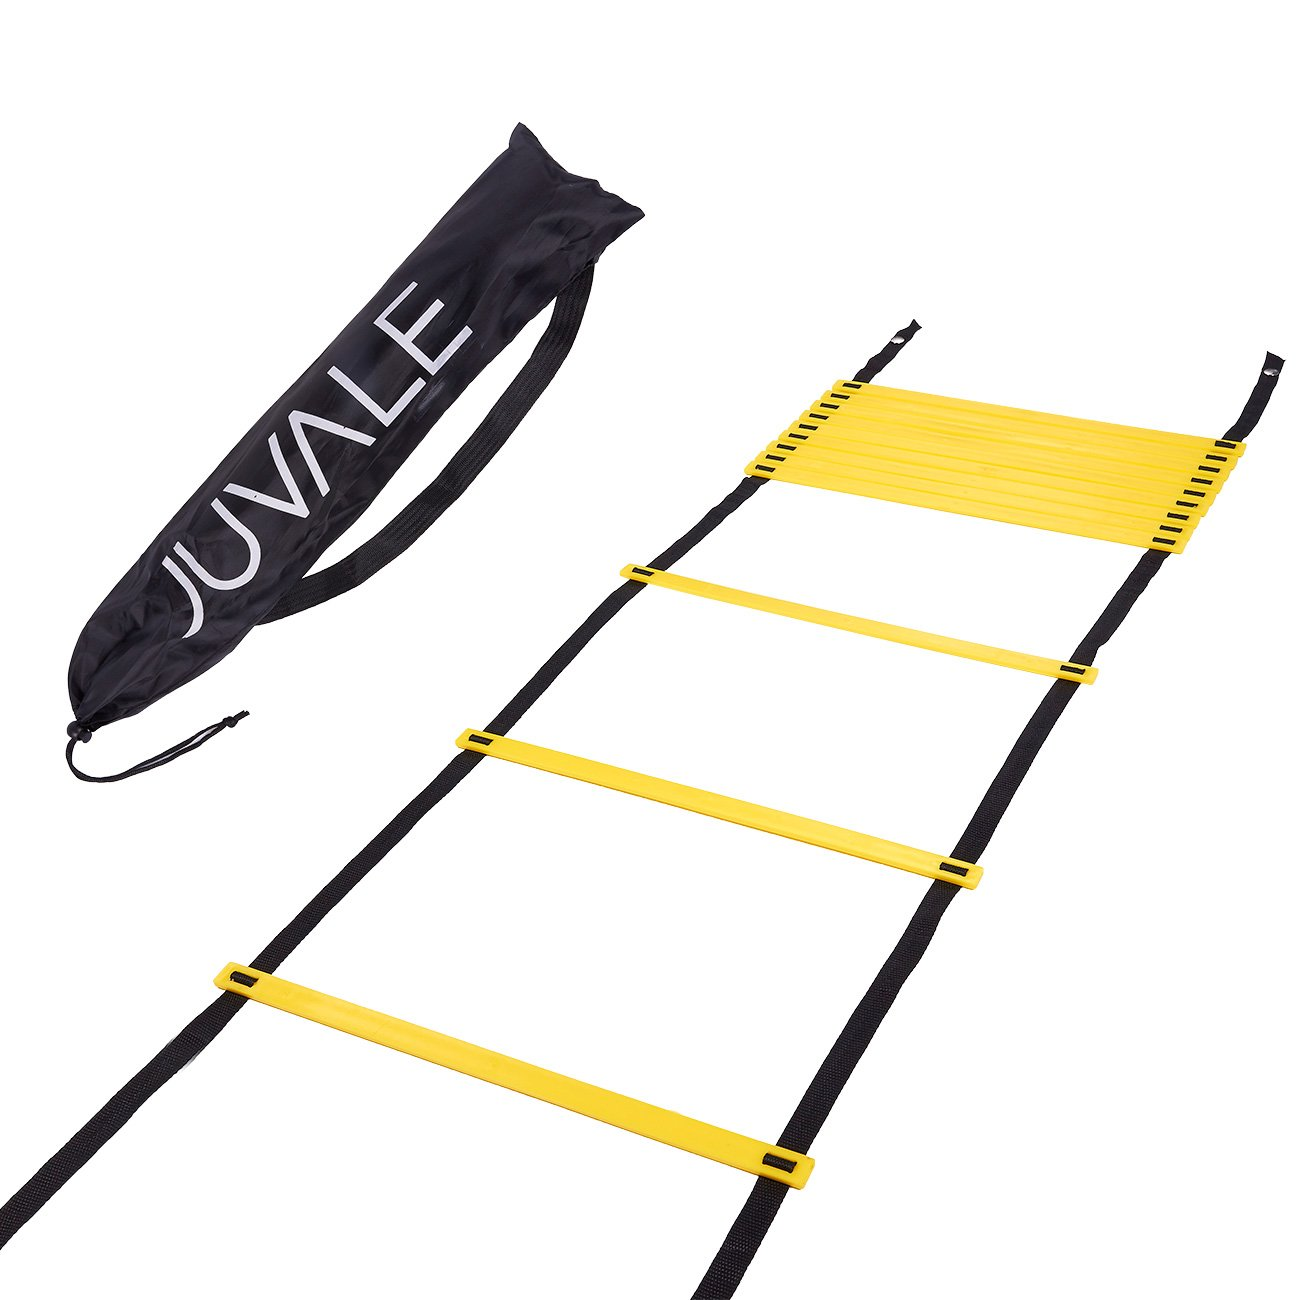 Juvale Agility Ladder - Speed Ladder Agility Training, Great Speed, Coordination, Footwork, Essential Football, Soccer, Workouts, Includes Carrying Bag, 12 Rungs, 20 Feet in Length, Black, Yellow